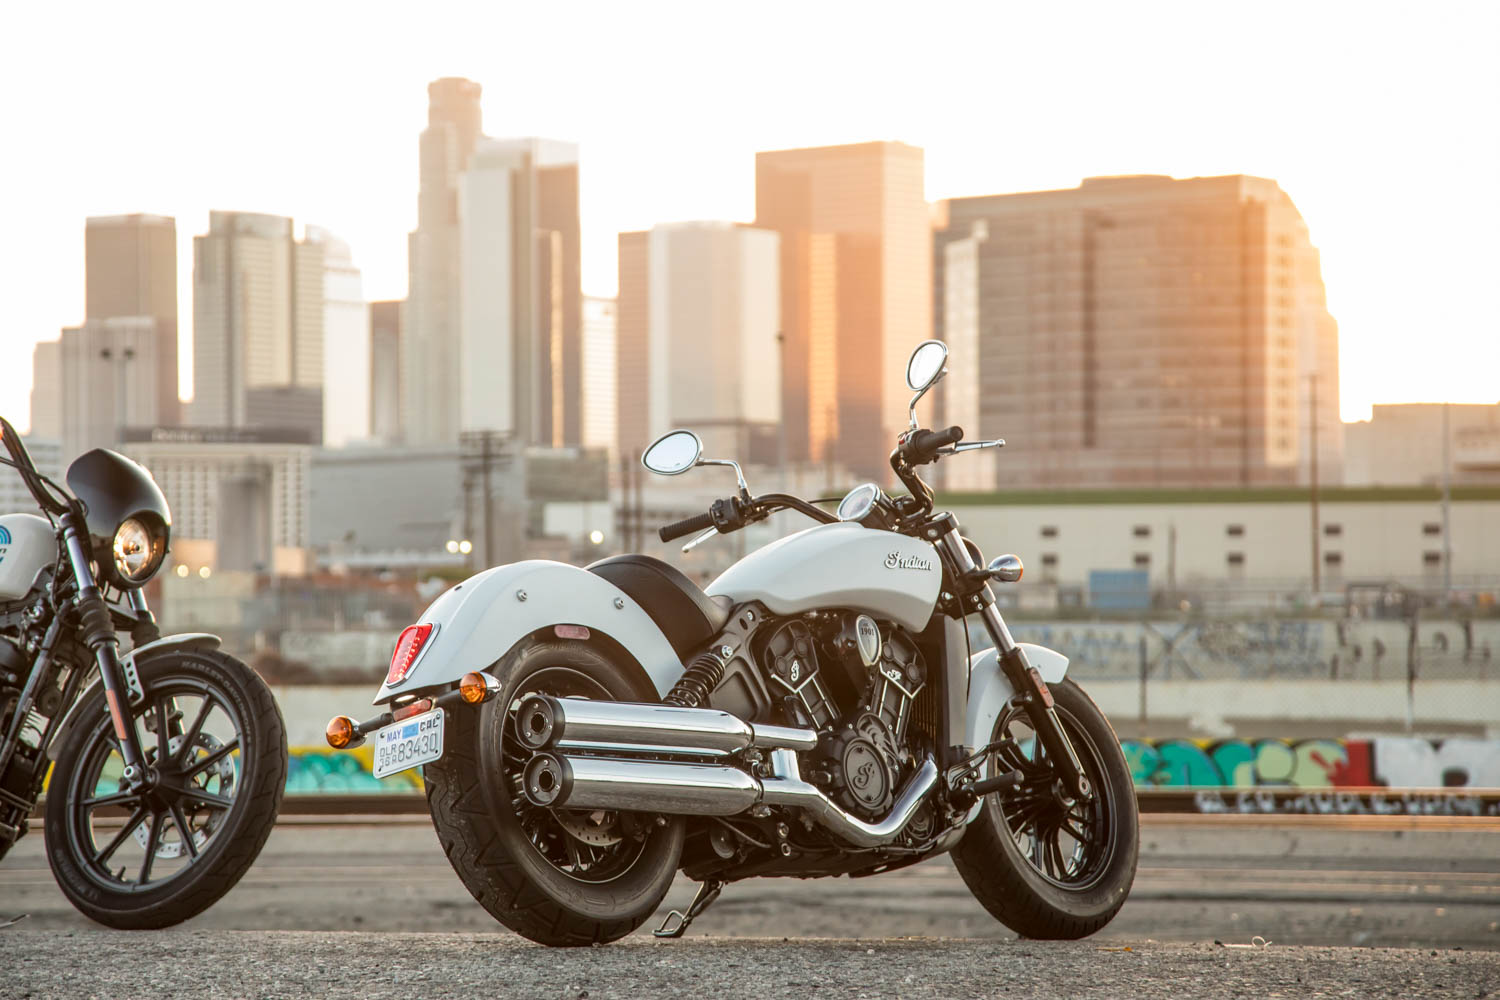 Low, long, and cool, the Scout Sixty looks like it's exhaling through an over-andunder shotgun. It is a thoroughly modern retro cruiser.